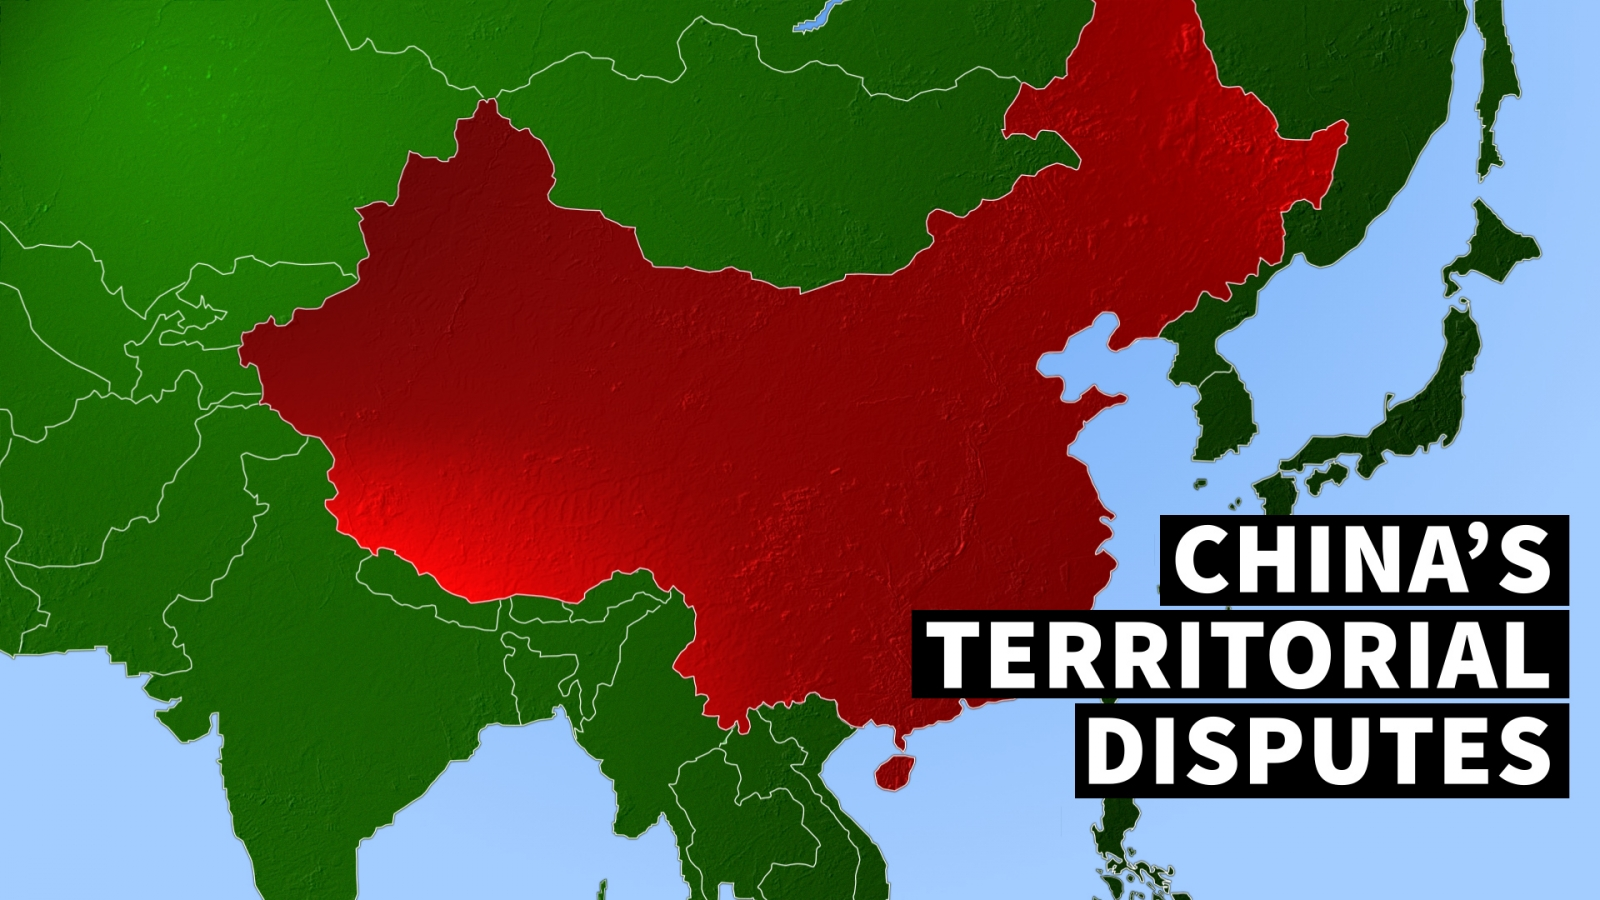 China territorial disputes